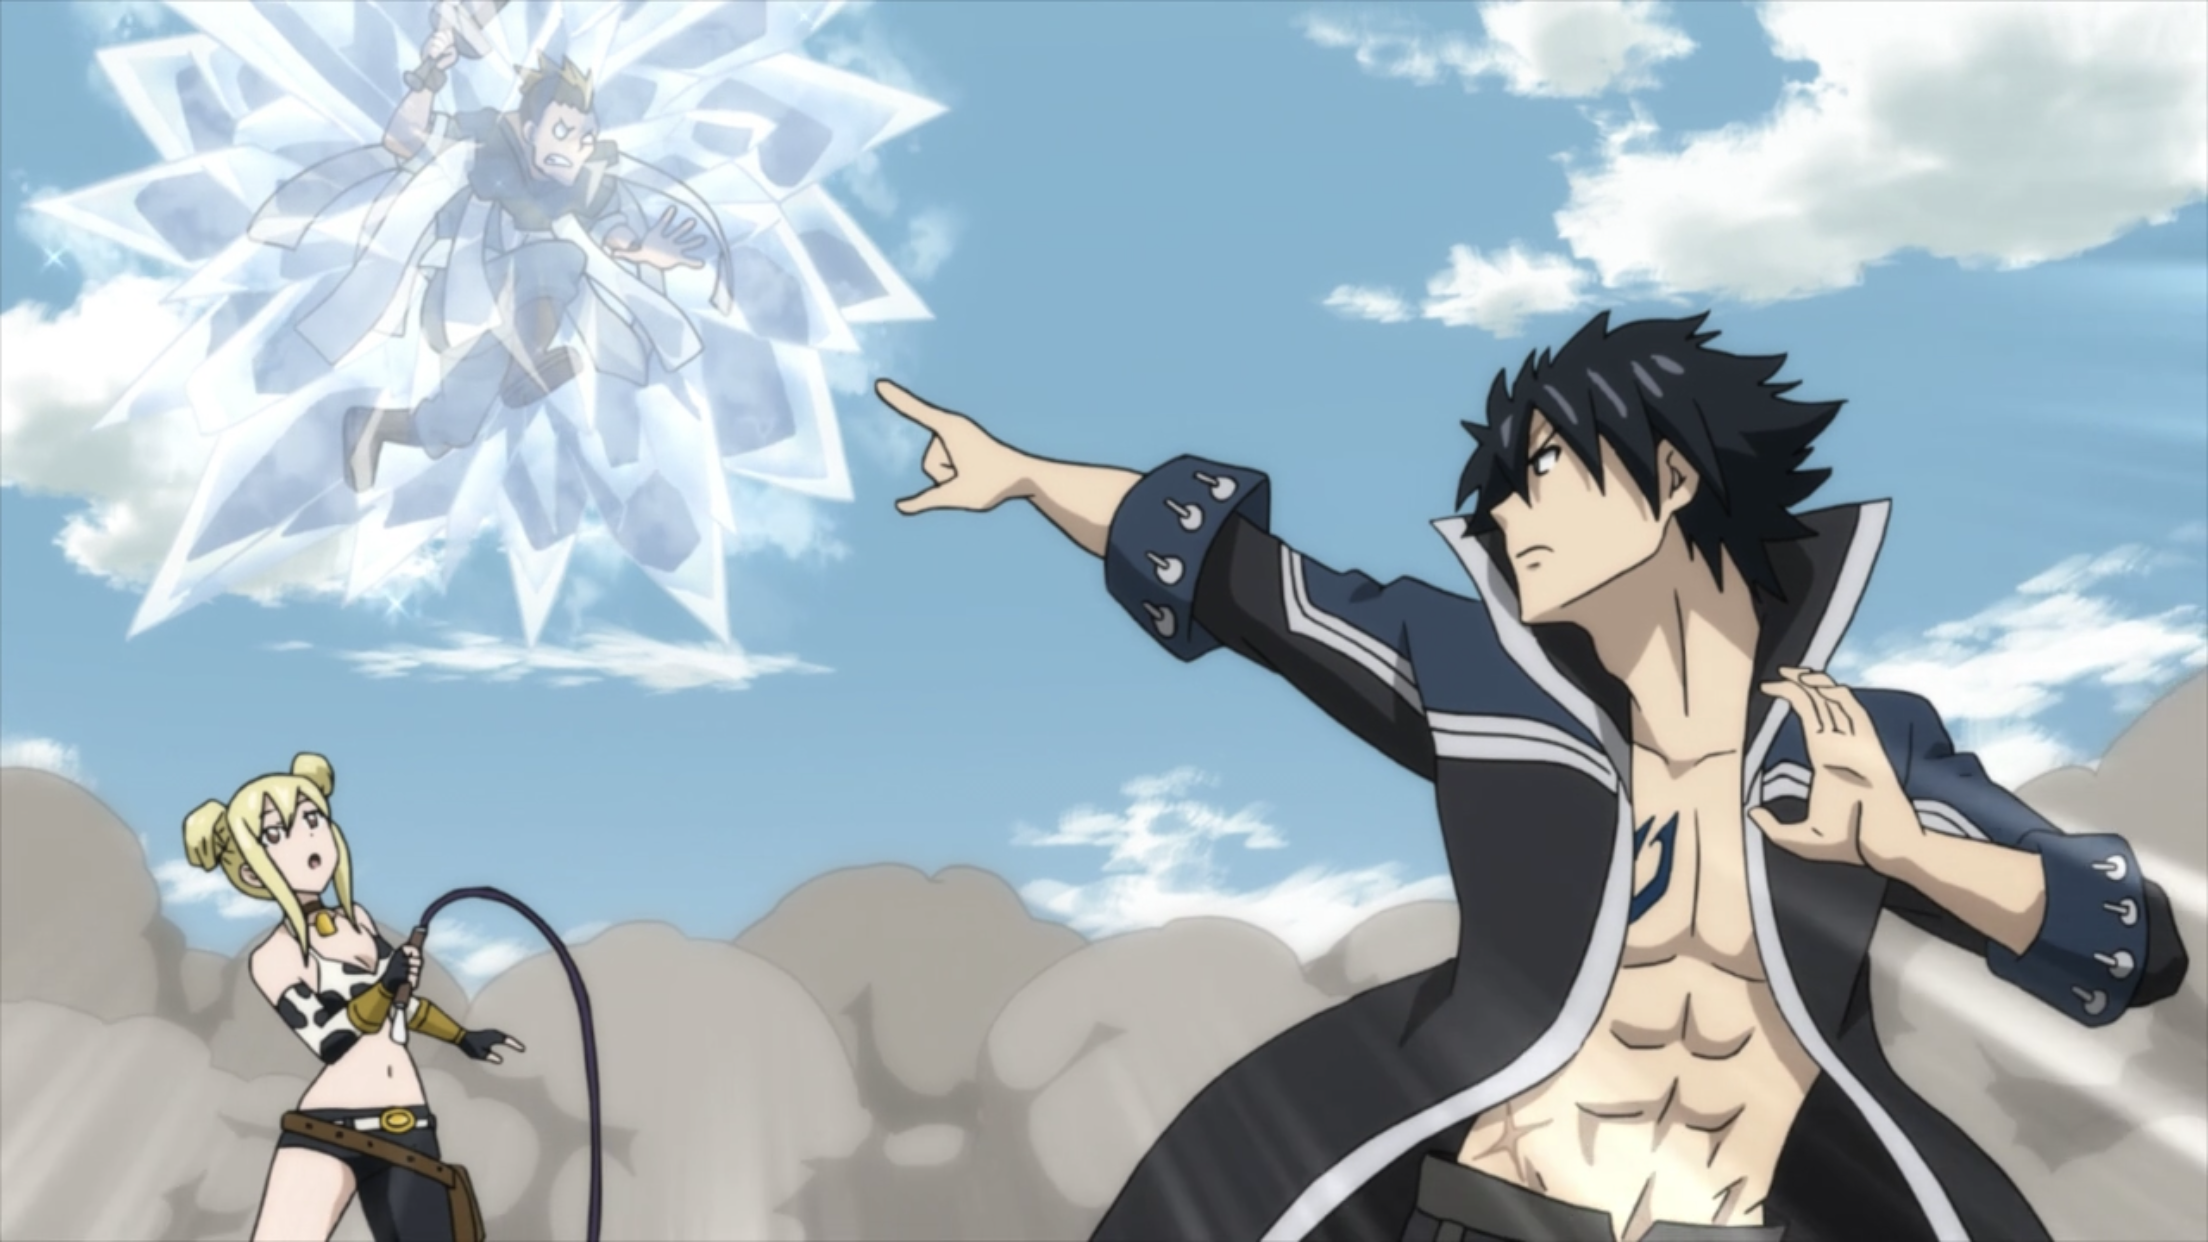 Season 3 Fairy Tail Dowload Anime Wallpaper Hd